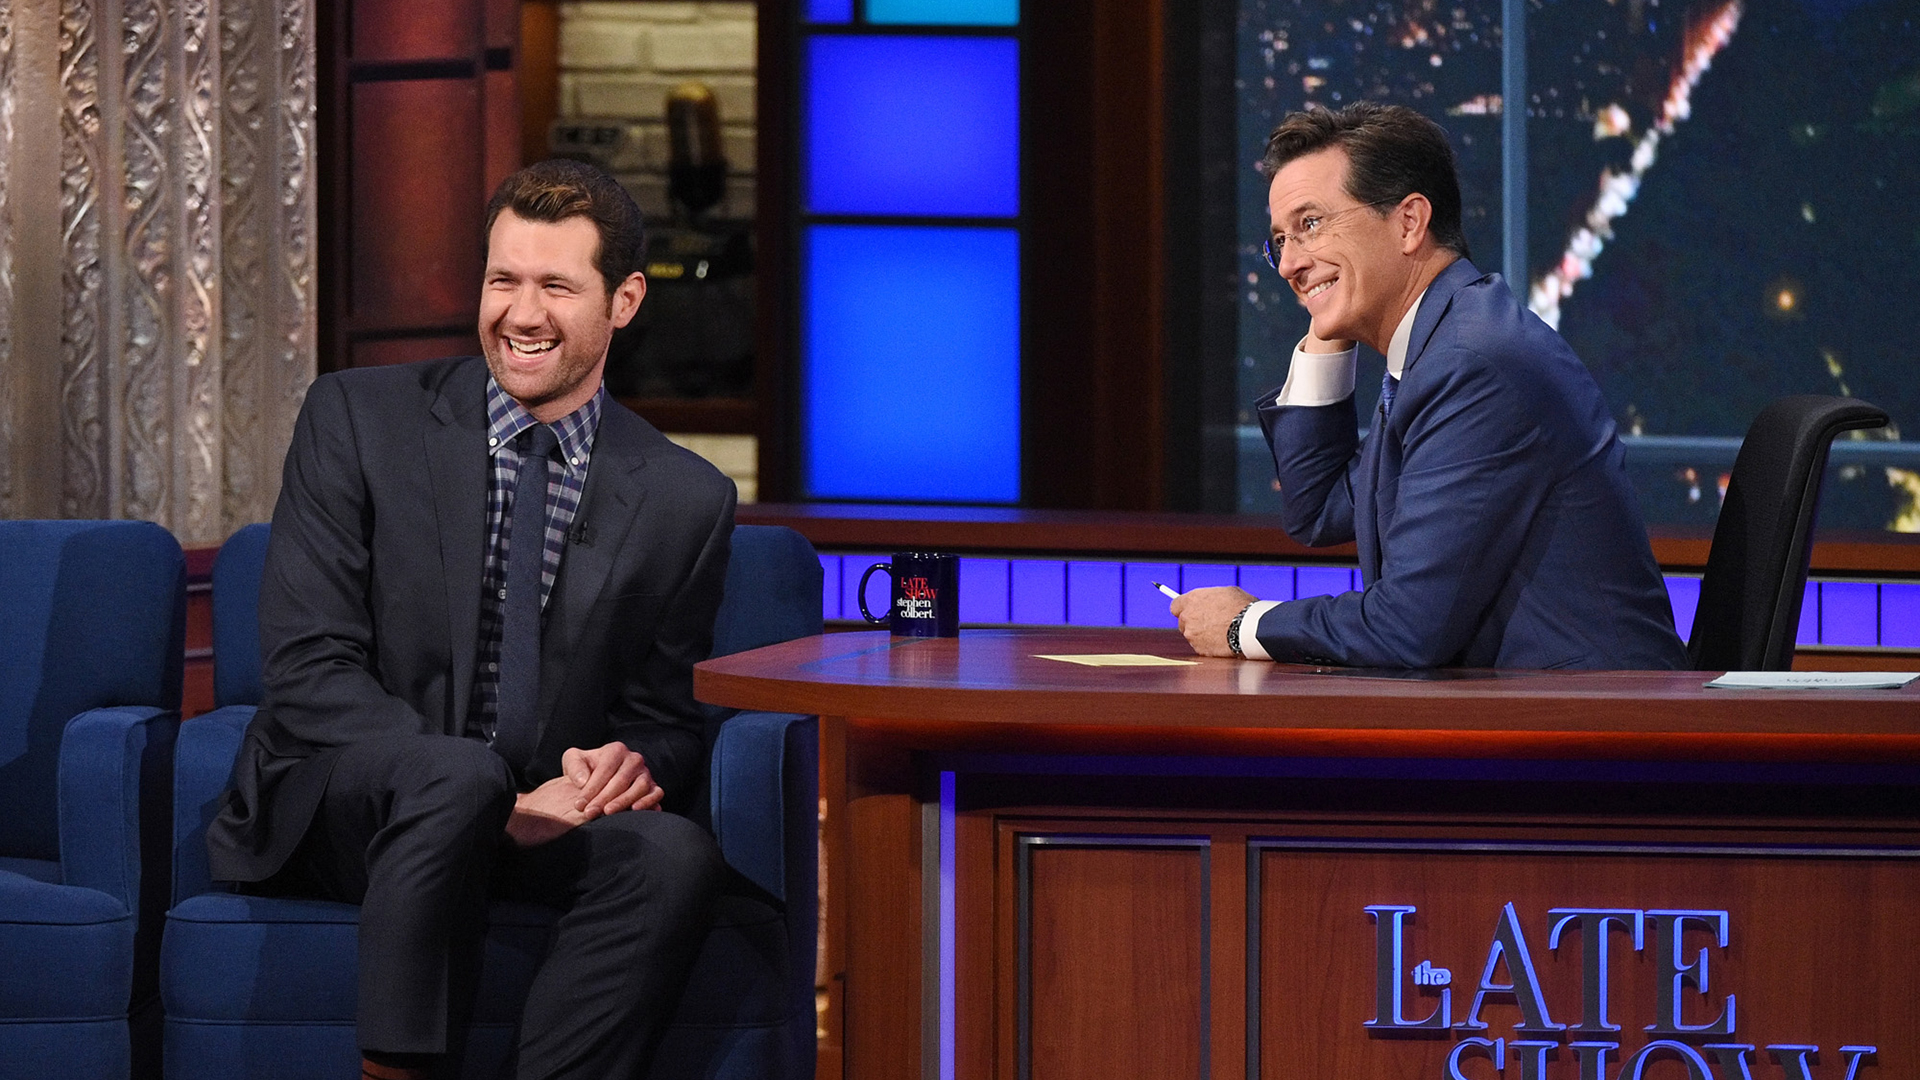 Billy Eichner and Stephen Colbert